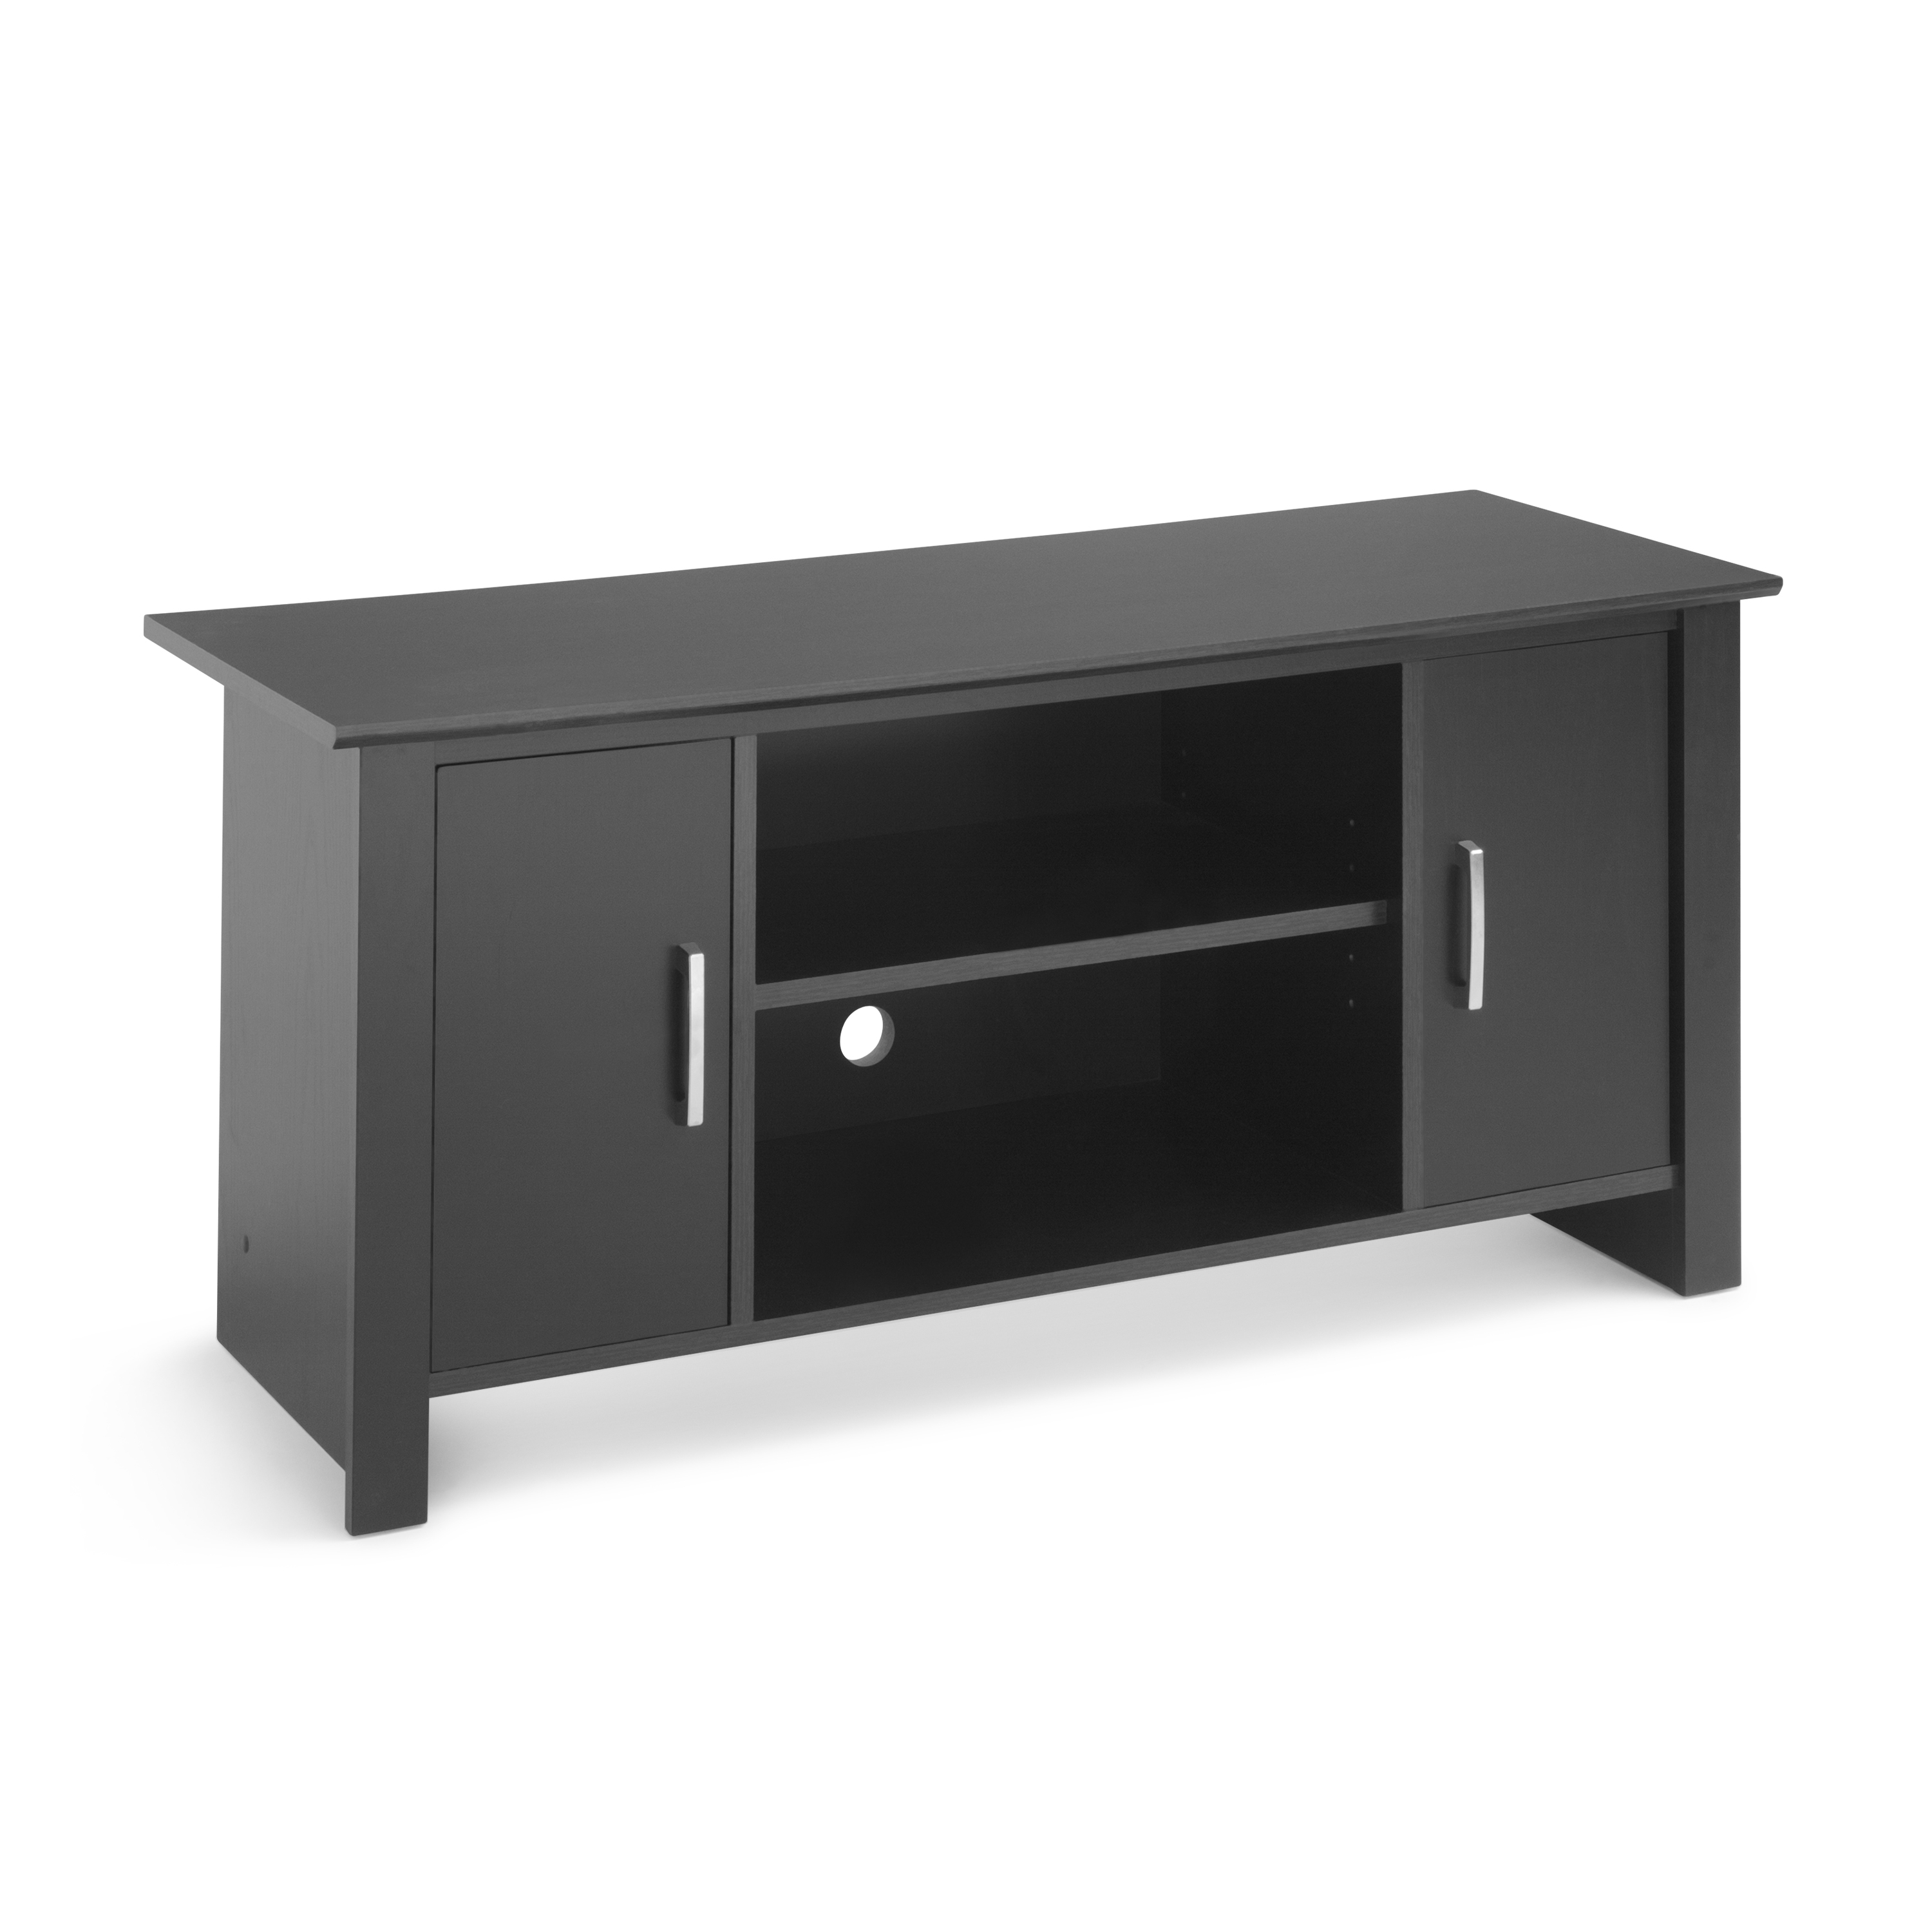 """Canyon 54 Inch Tv Stands Intended For Best And Newest Mainstays Tv Stand For Flat Screen Tvs Up To 47"""", True Black Oak (View 5 of 20)"""